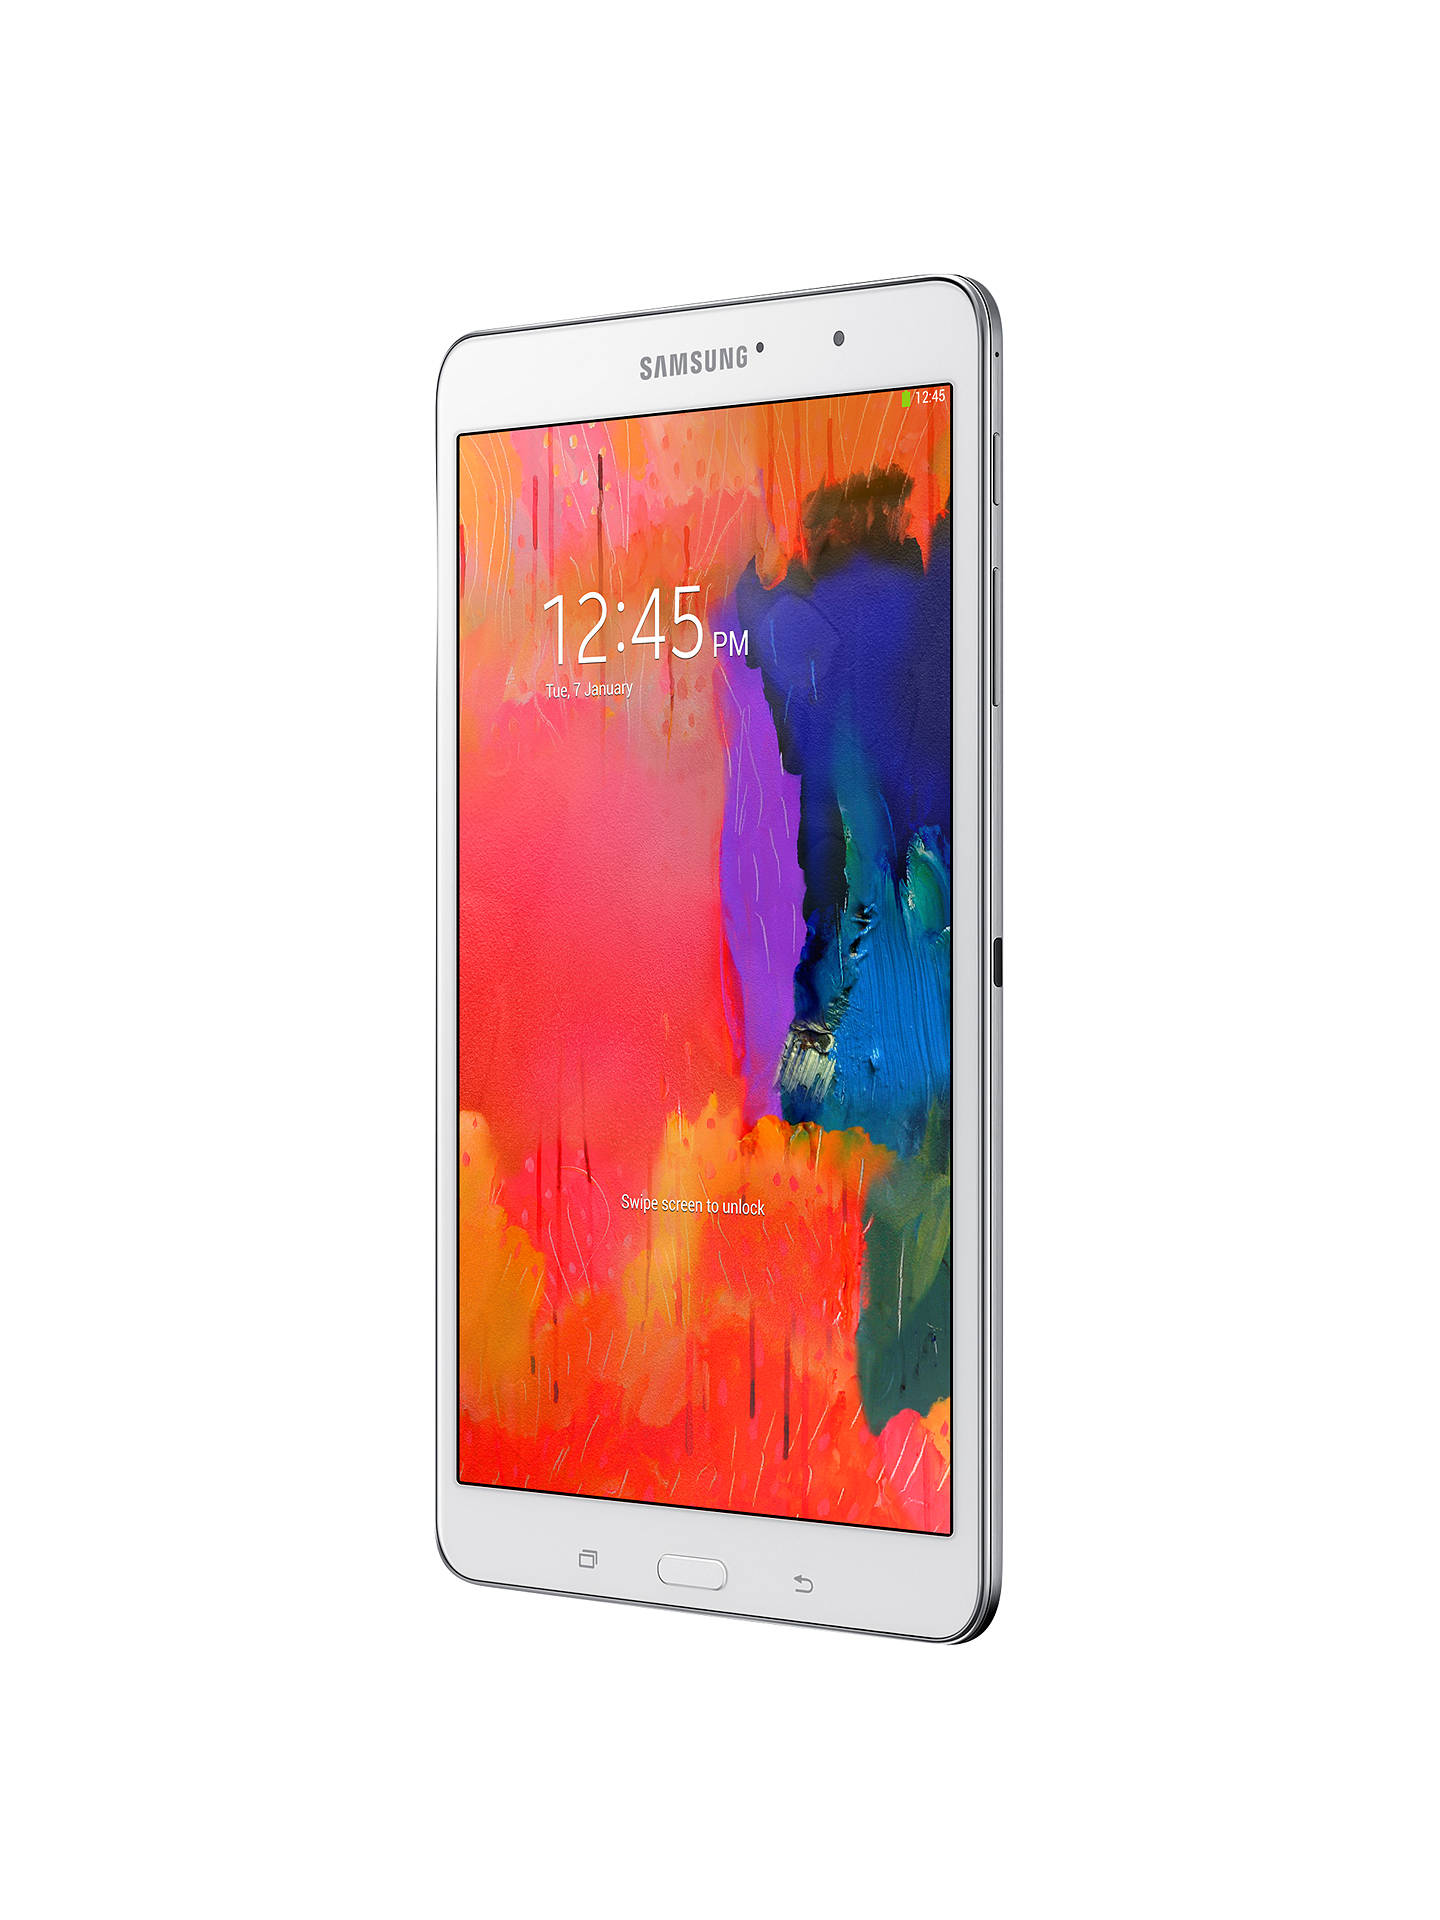 "Buy Samsung Galaxy TabPRO Tablet, Qualcomm Snapdragon, Android, 8.4"" 16GB, Wi-Fi, White Online at johnlewis.com"